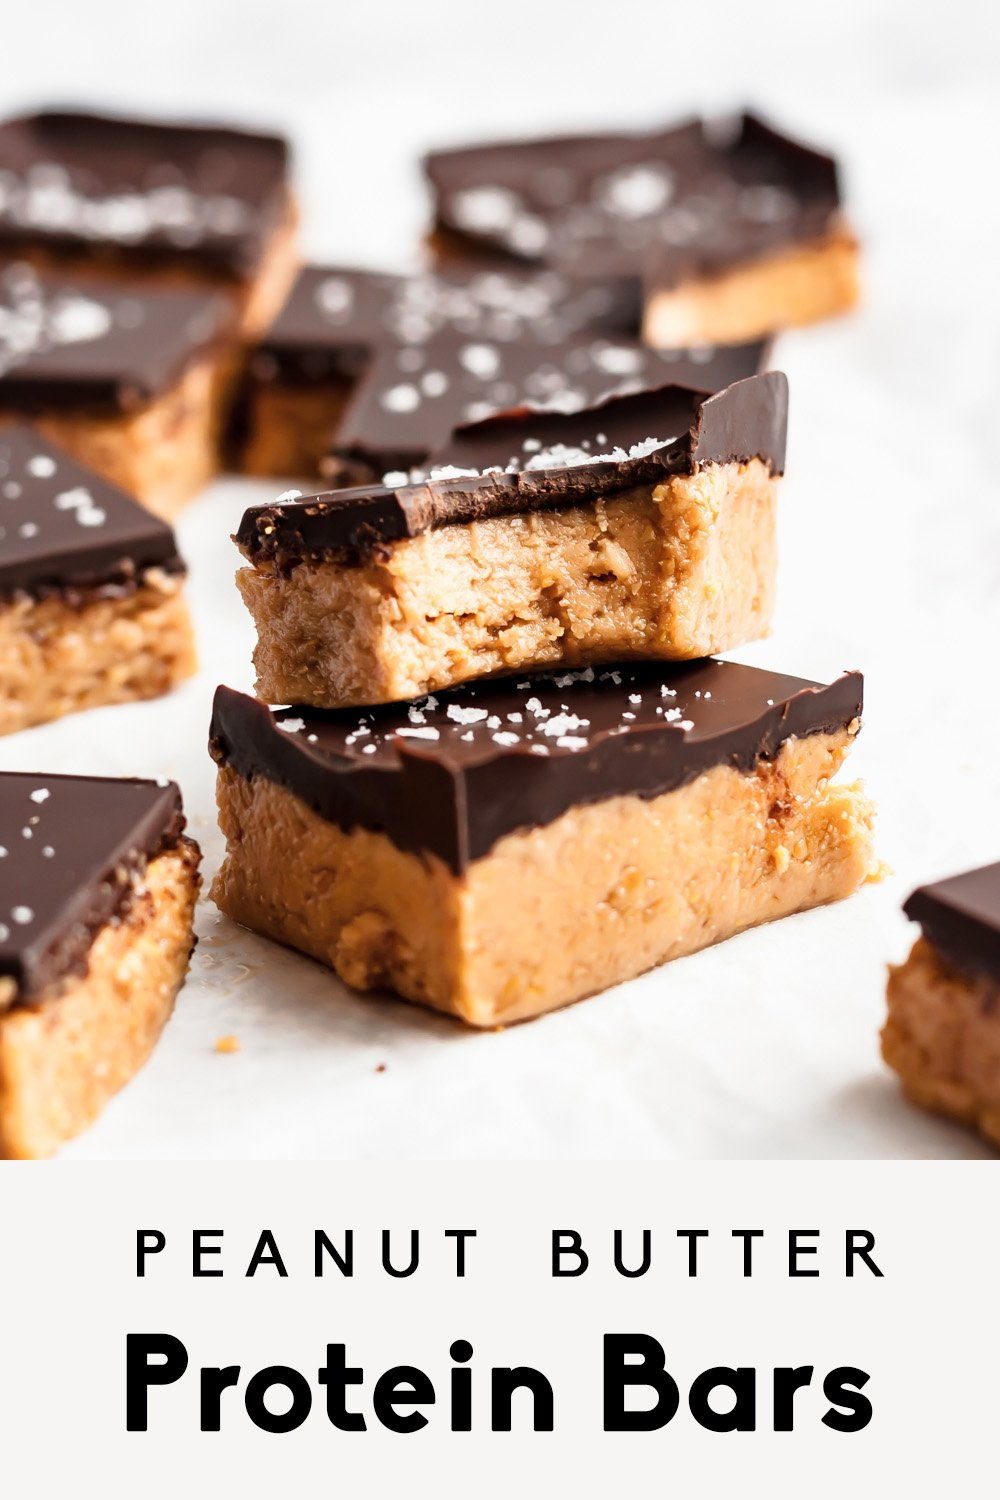 peanut butter protein bars topped with chocolate and with text overlay